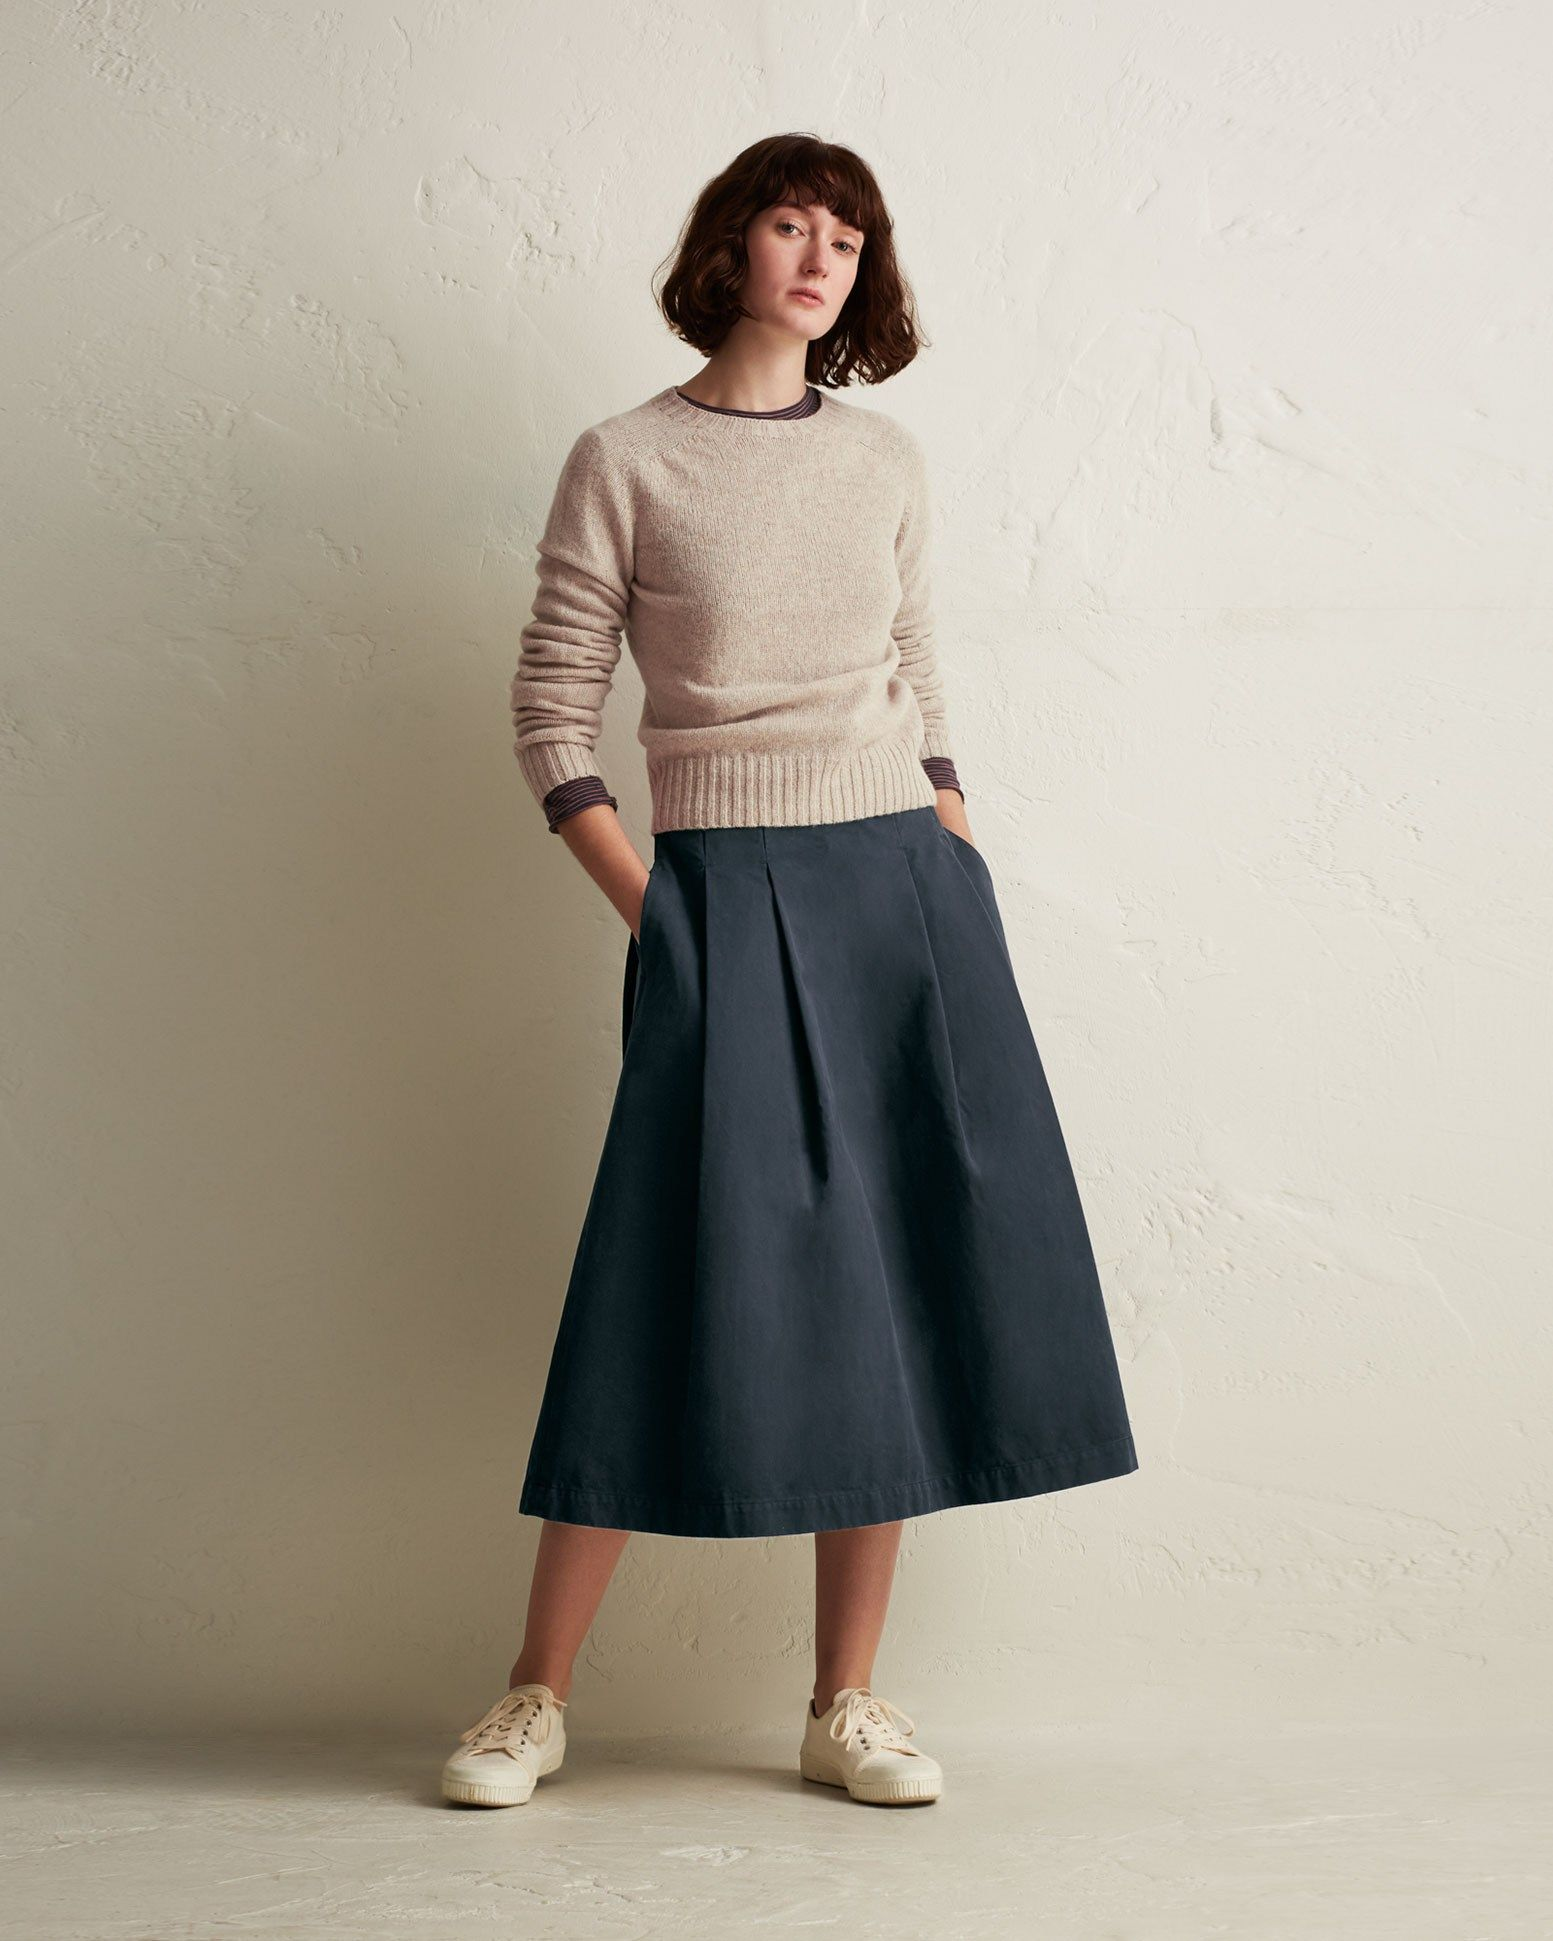 7f42b00d6a Mid-length pleated skirt in a garment-dyed, peachy cotton twill. Fits  neatly over the waist and hips with the pleats opening out below. Pockets.